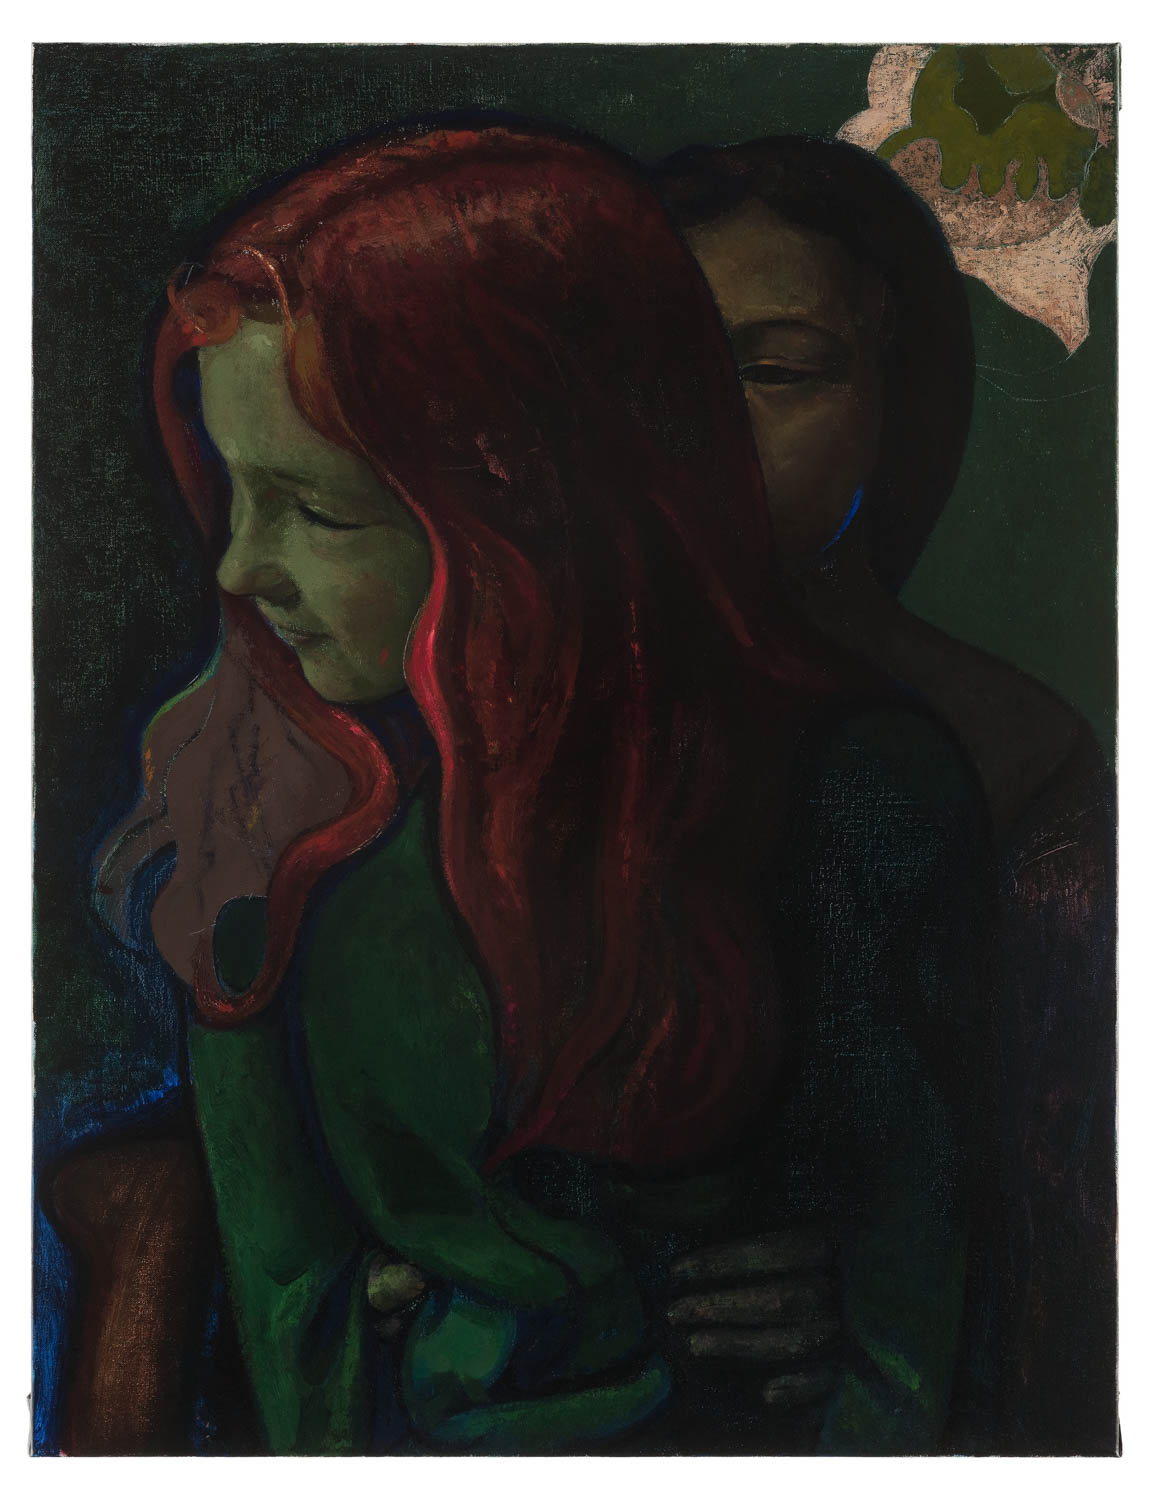 <i>Red and Dark Haired Sisters</i>, 2017<br />Oil on canvas<br />28 3/4 x 22 inches (73 x 56 cm)<br />29 1/2 x 23 x 1 1/2 inches (74.8 x 58.3 x 4 cm) framed<br />